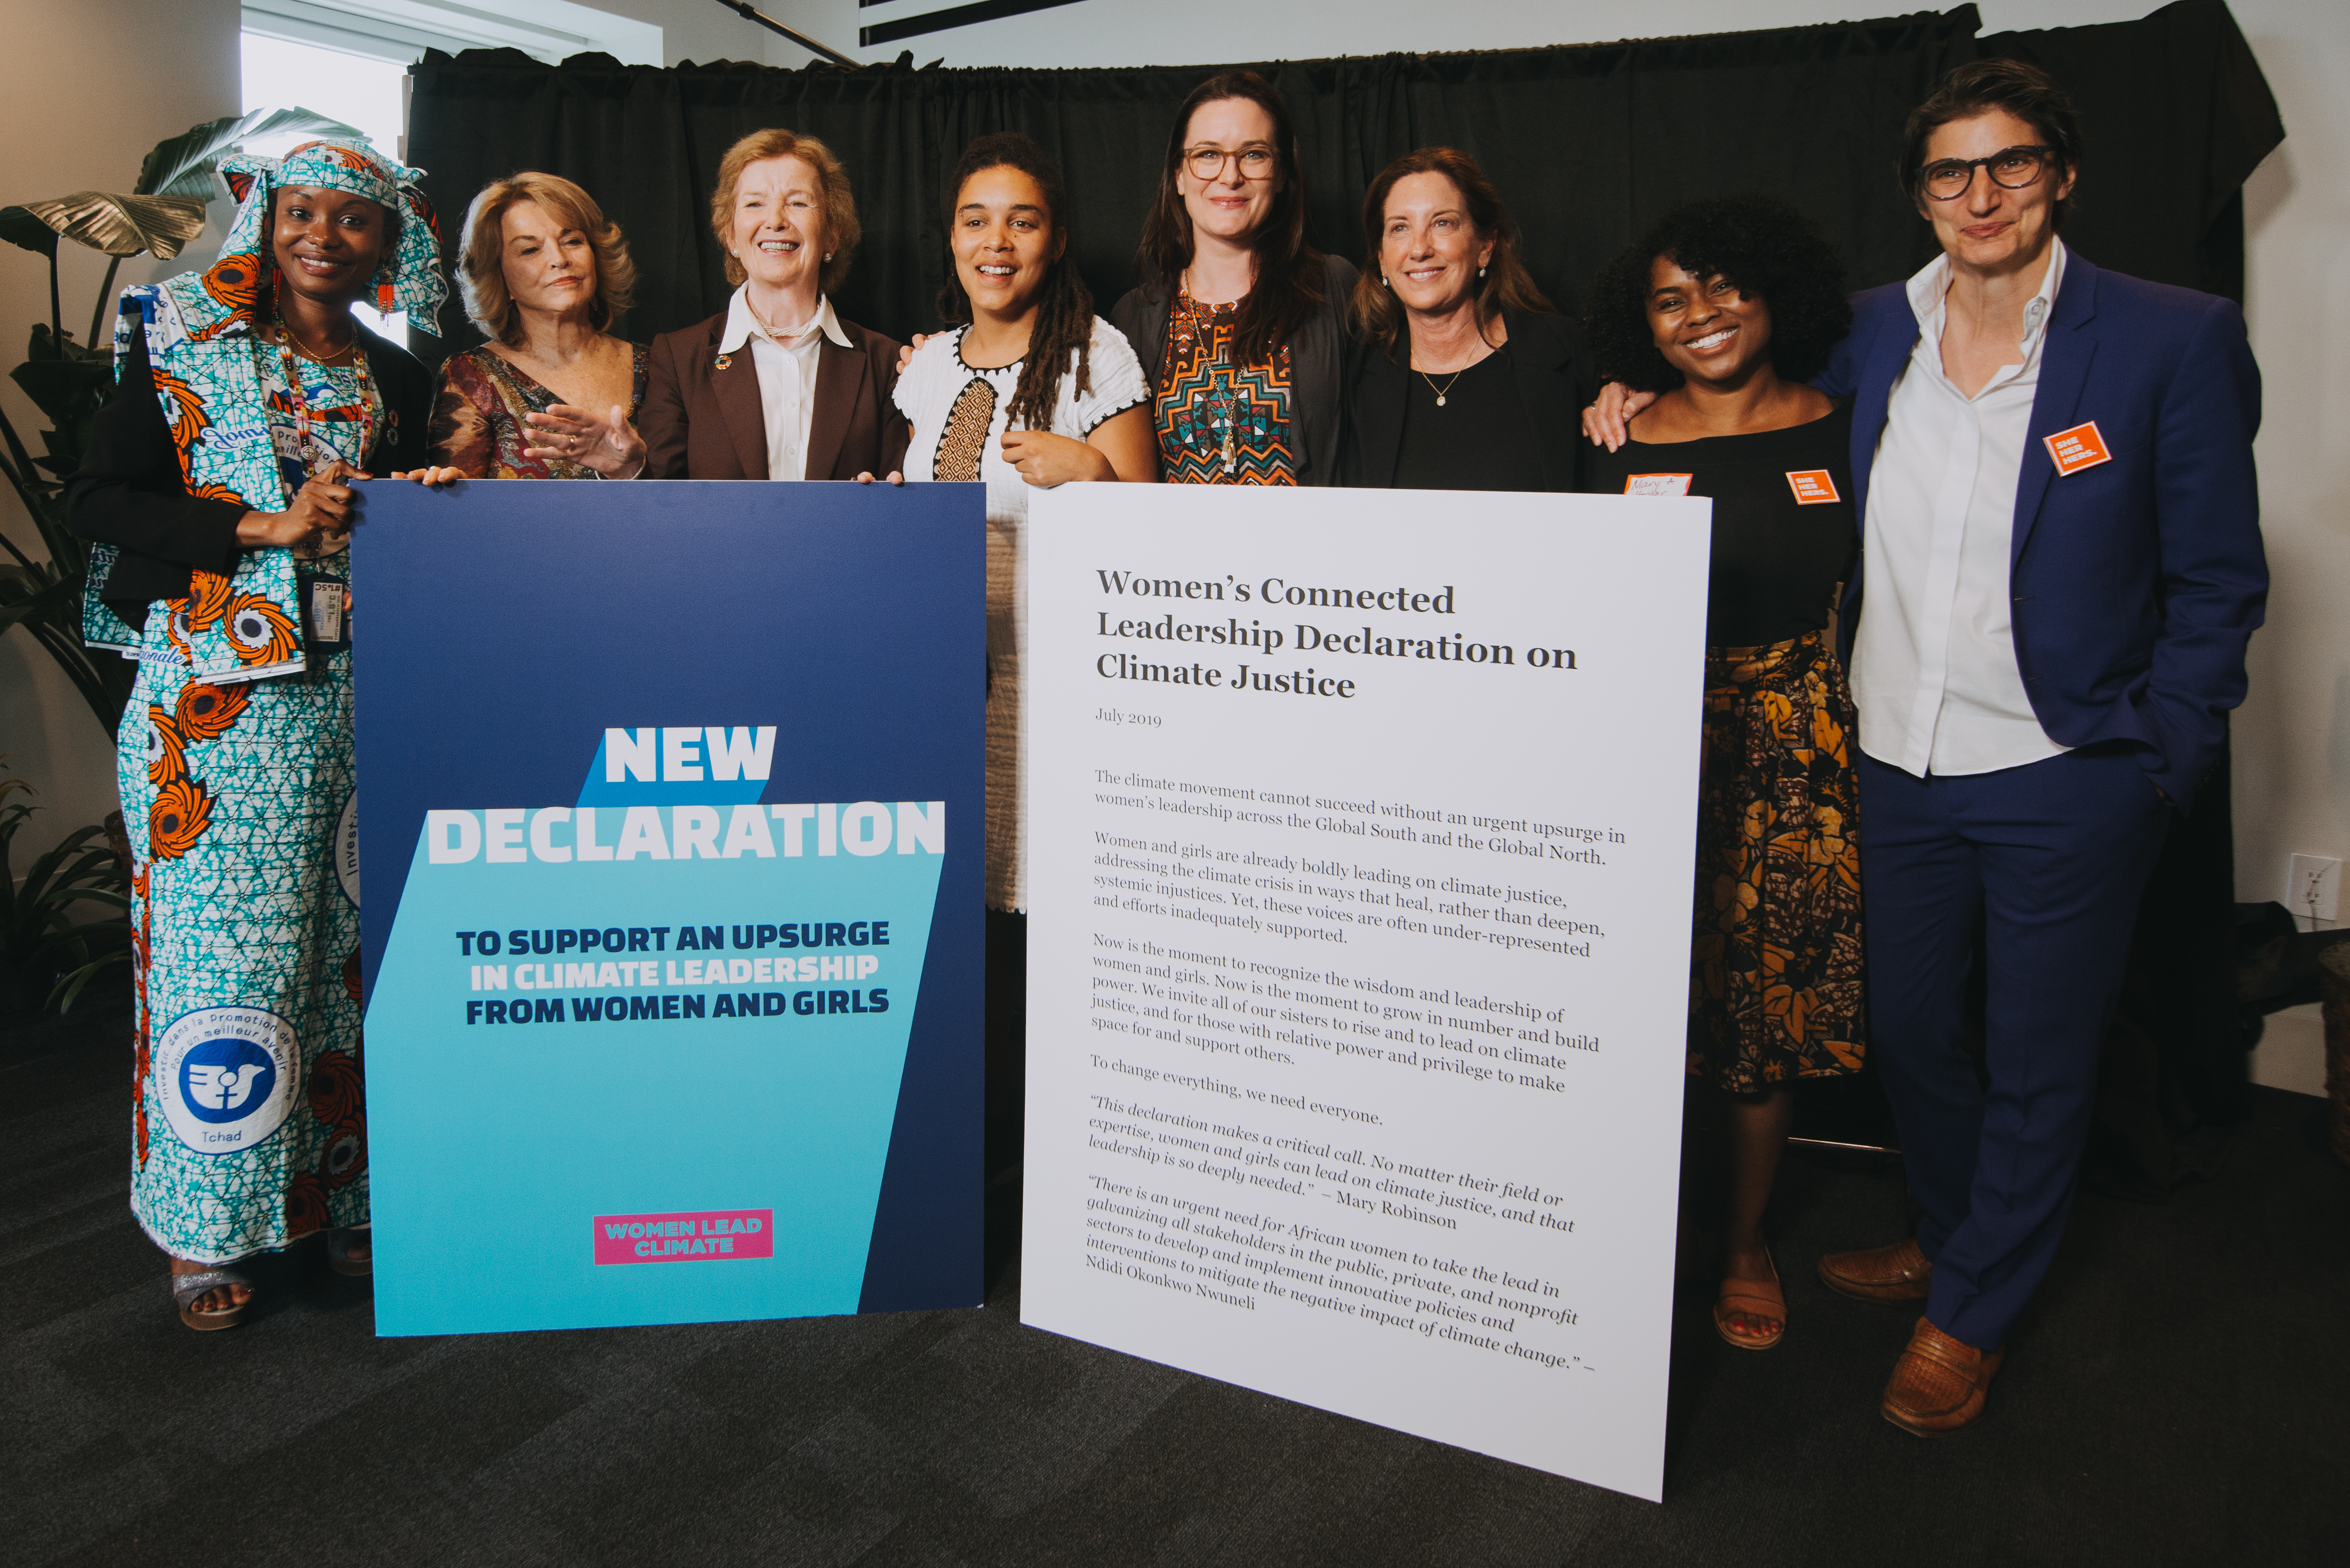 CWL Declaration on Climate Change announcement with (l-r) environmental activist Hindou Oumarou Ibrahim; CWL Forum co-convener Pat Mitchell; Mary Robinson, president of the Mary Robinson Foundation and former president of Ireland; climate activist Sarra Tekola; Dr. Katharine Wilkinson, Project Drawdown; CWL Forum co-convener Ronda Carnegie; NRDC Publications Director Mary Annaïse Heglar; and Doc Society Director Jess Search at the Doc Society Climate Story Lab.